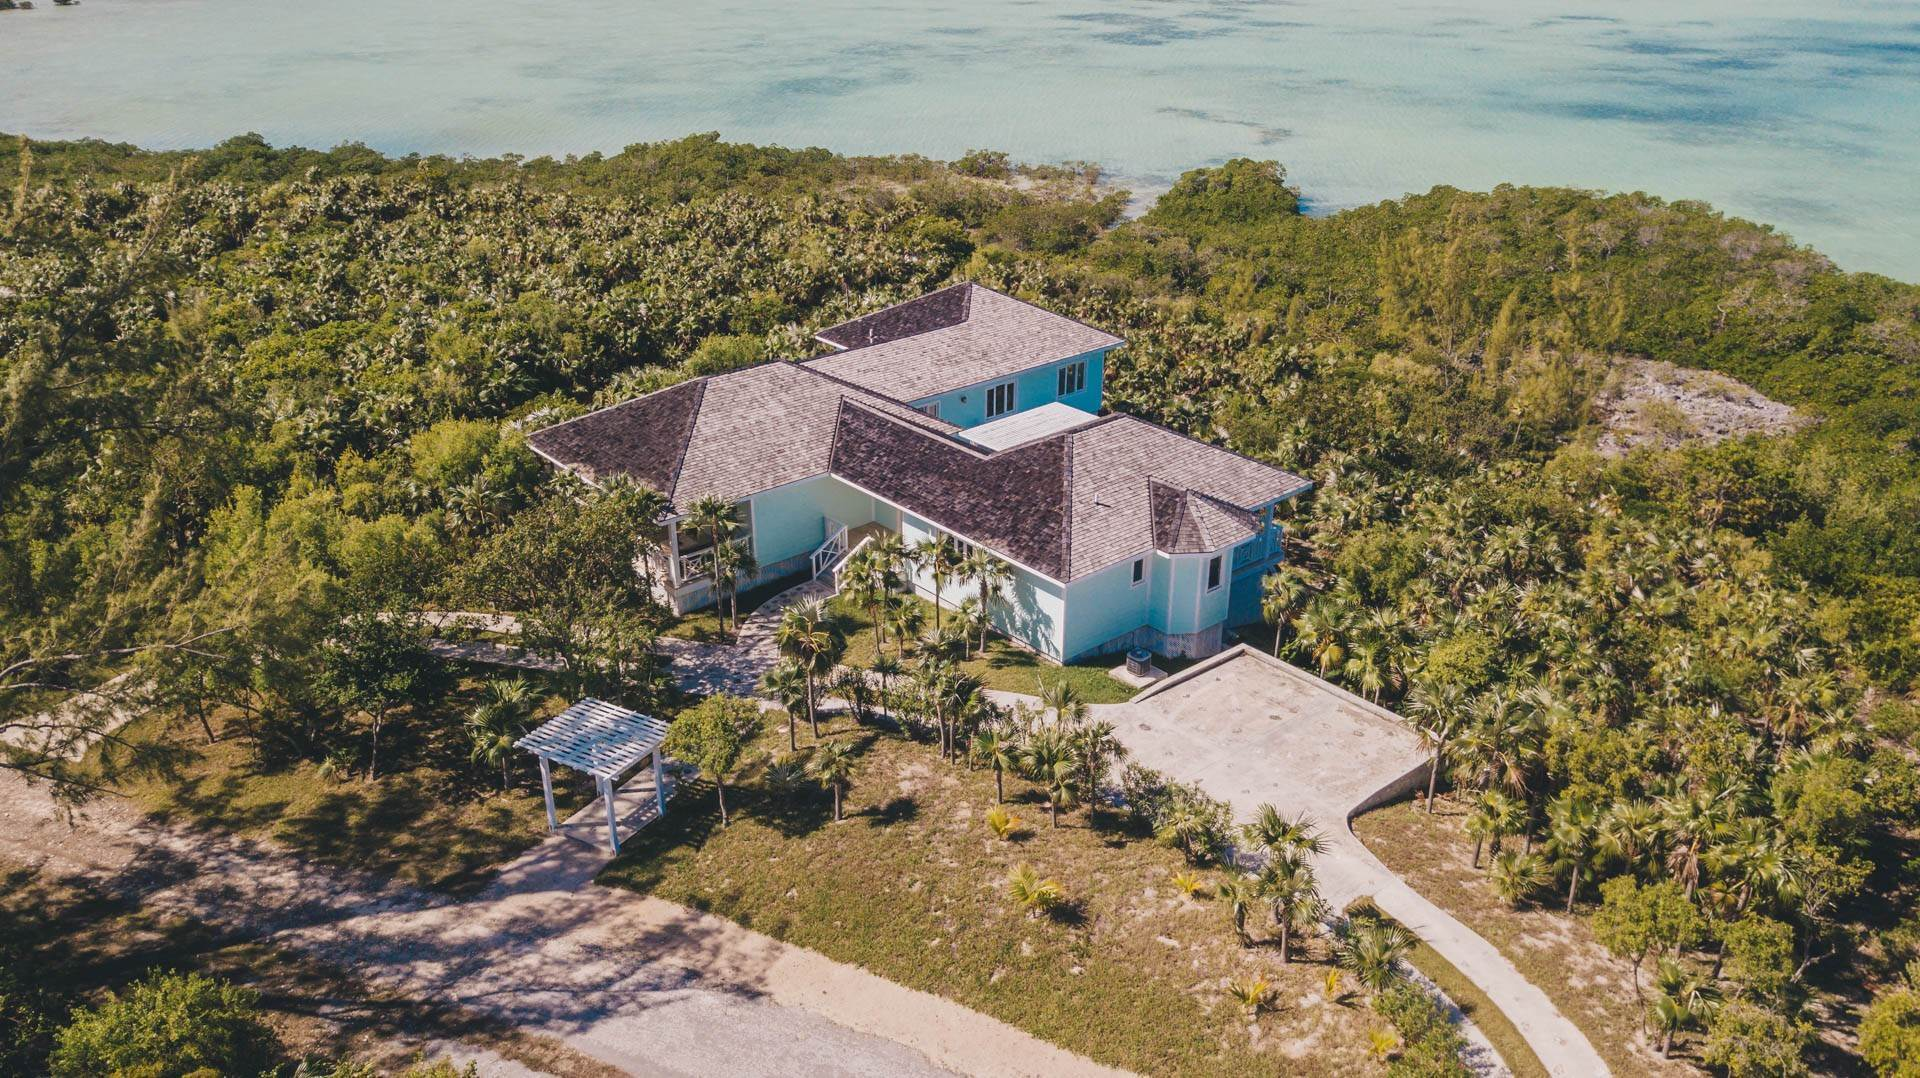 37. Single Family Homes for Sale at Savannah Sound Home - Windermere Island - MLS 44478 Windermere Island, Eleuthera, Bahamas